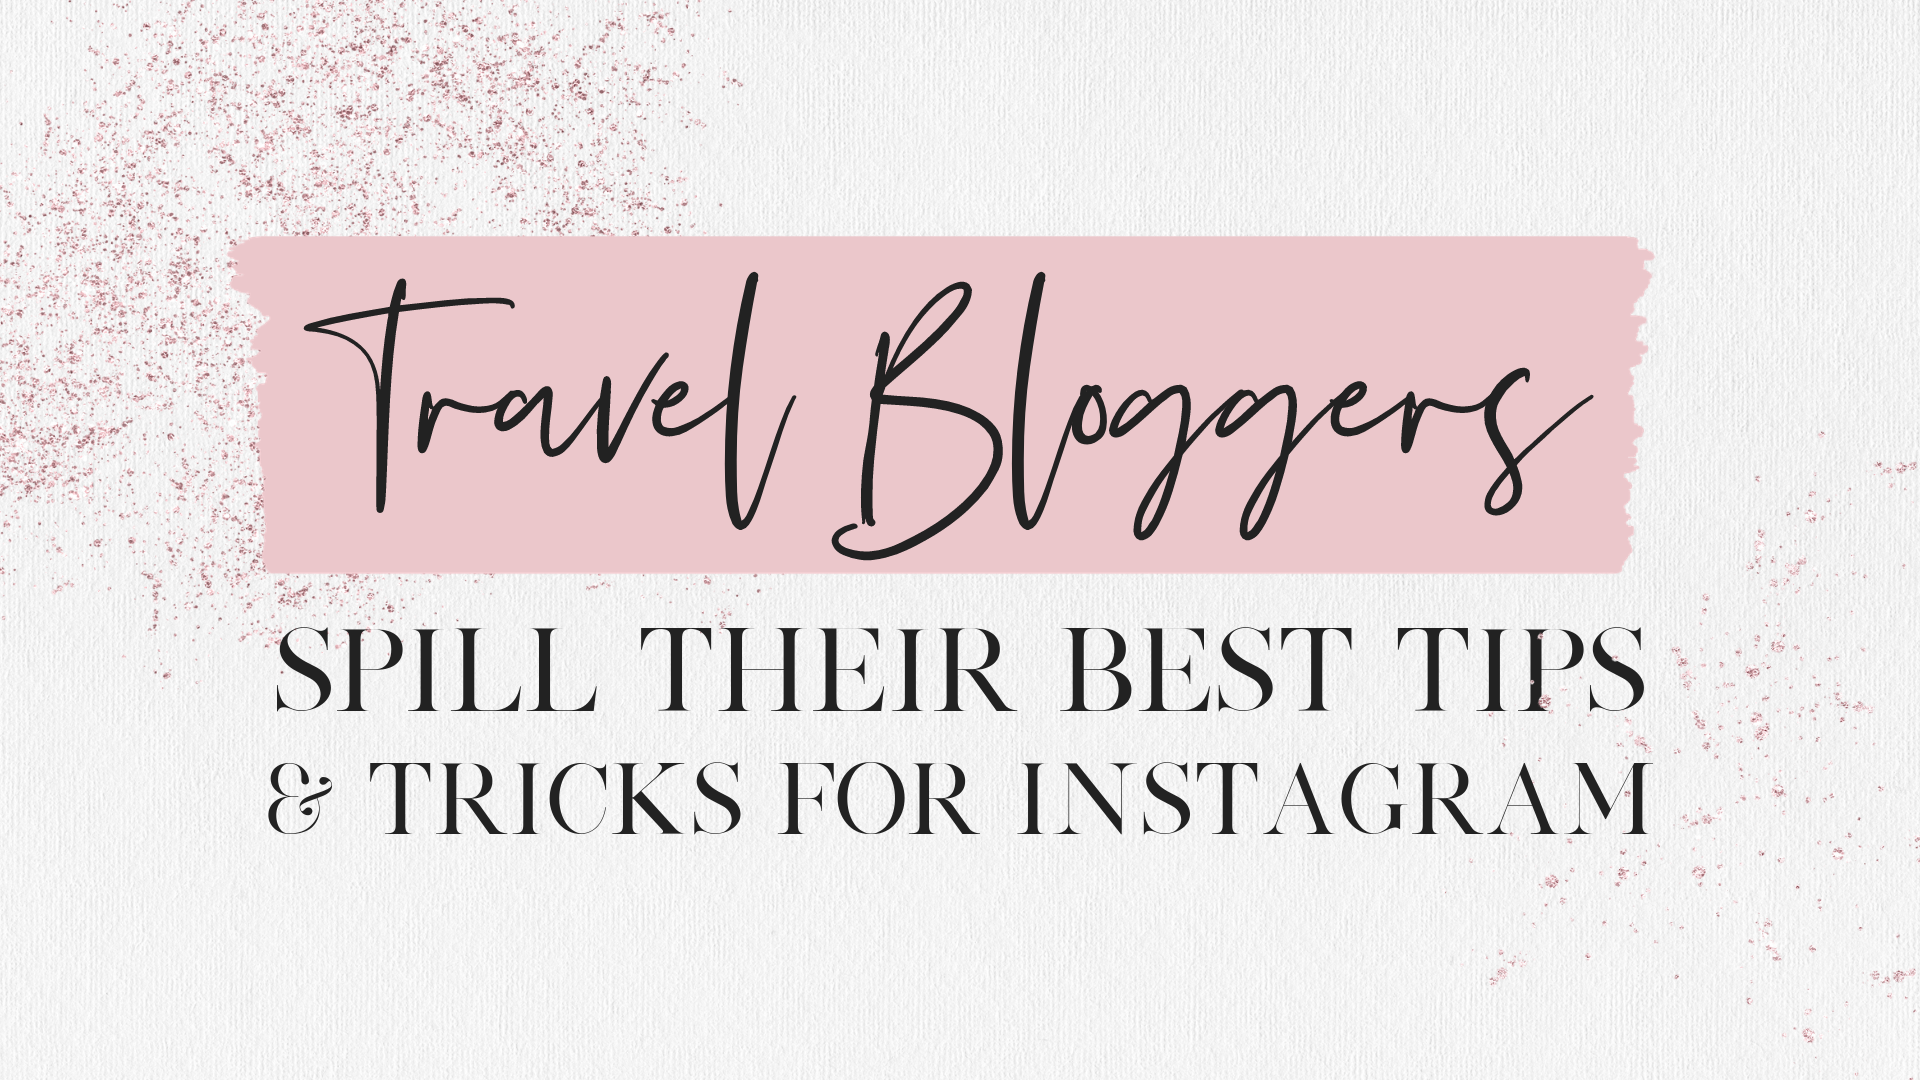 travel bloggers tips and tricks instagram